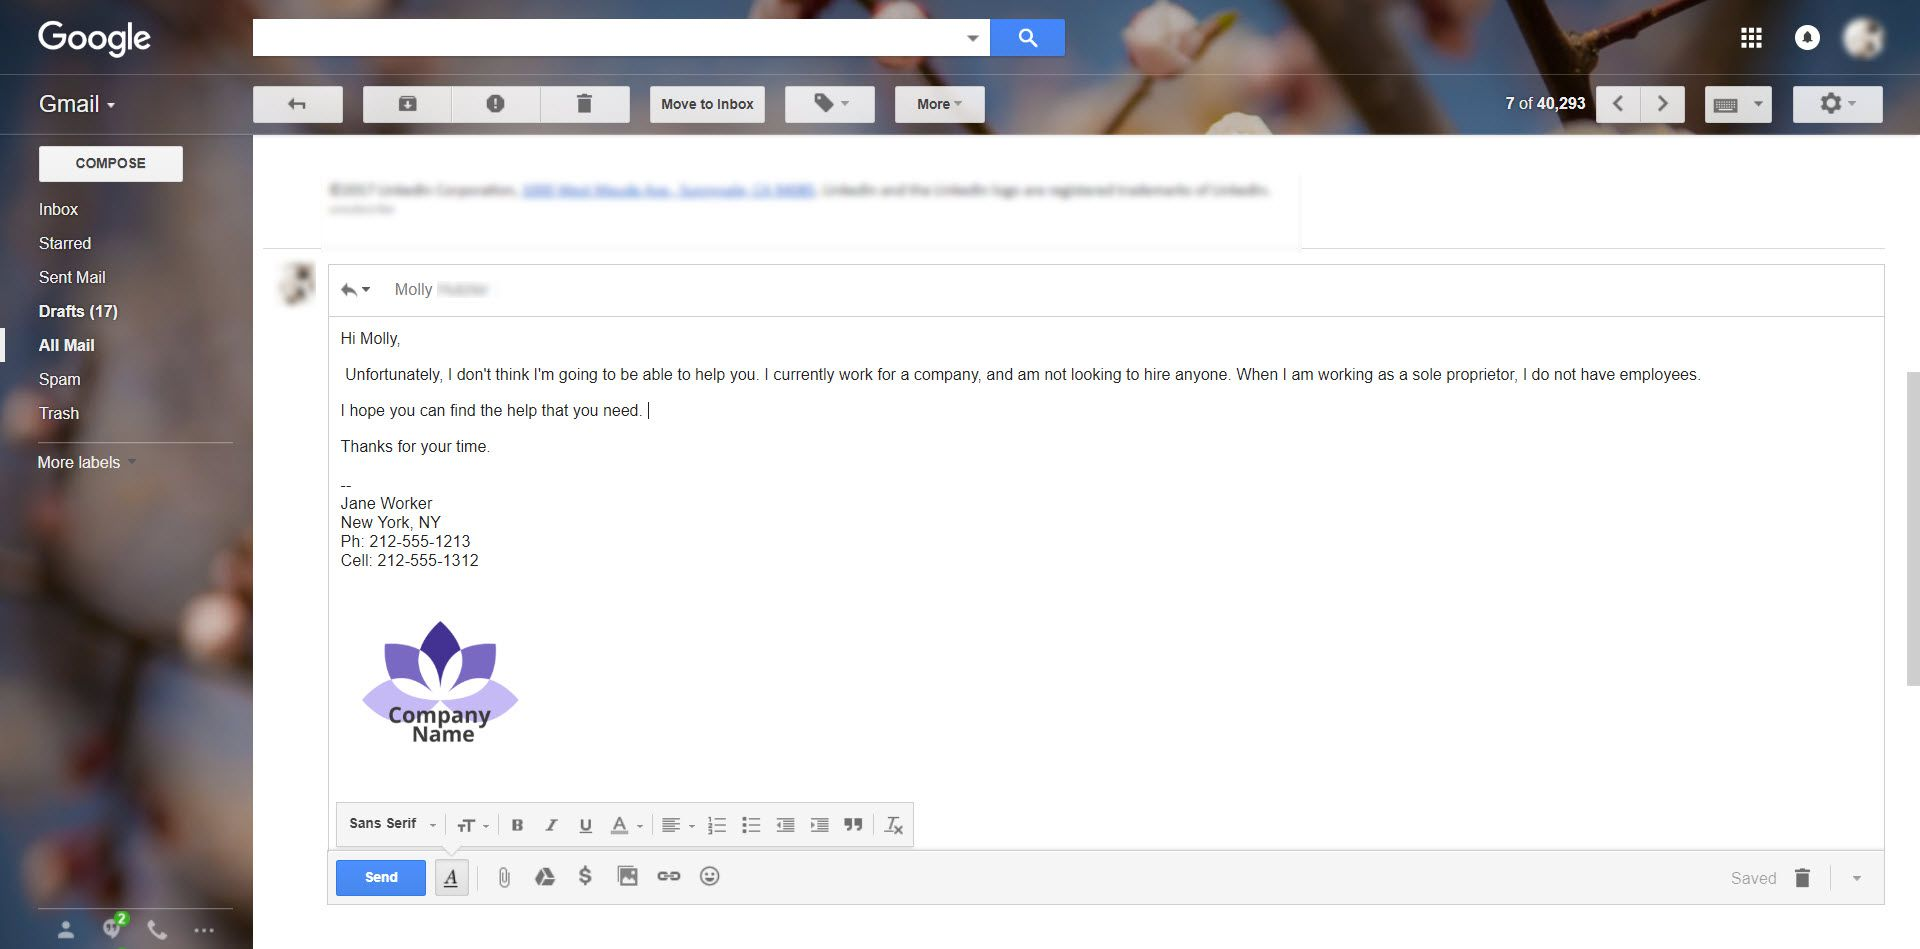 Screenshot of an email in Gmail with a quick on-the-fly signature added at the end of the mesage